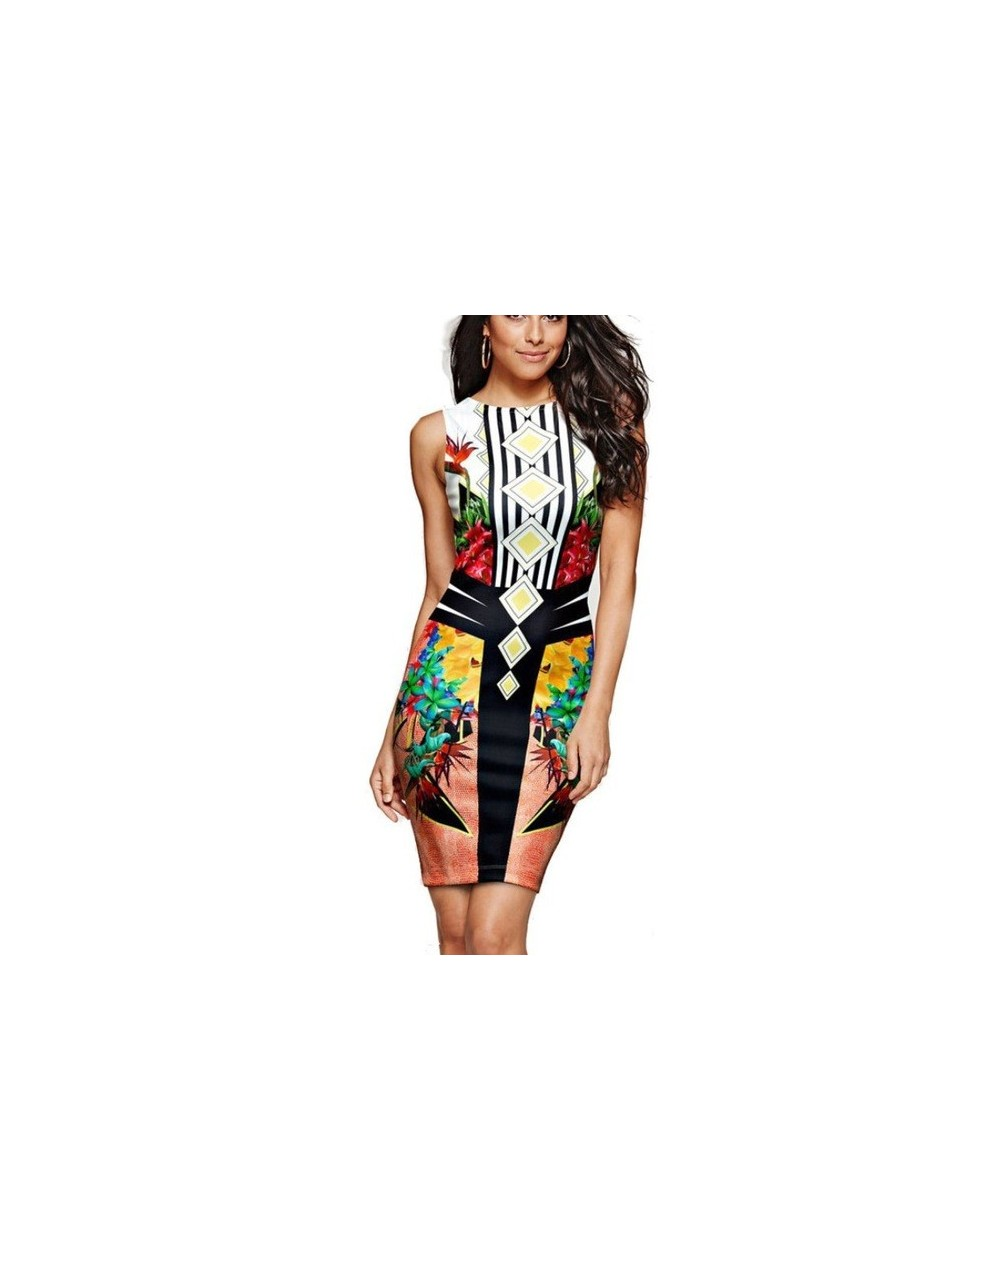 3XL Plus Size Women Office Lady Dress Casual Sleeveless O-Neck Print Dresses Summer Sexy Slim Bodycon Package Hip Dress Vese...